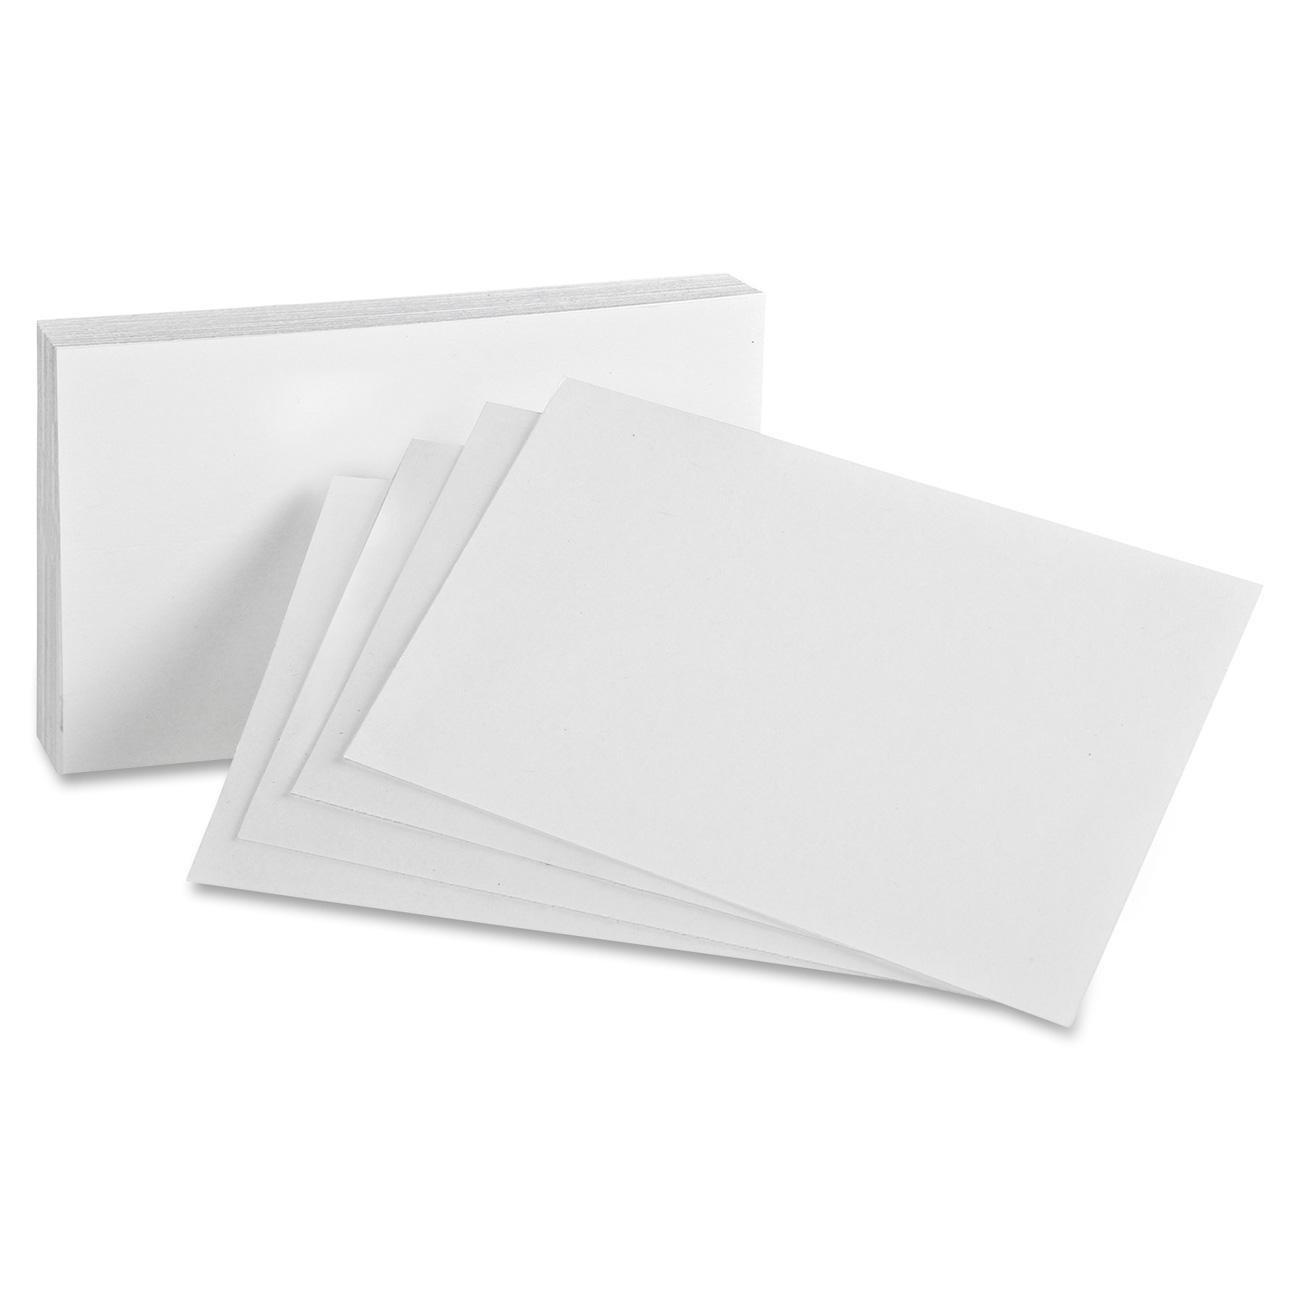 Blank Index Cards, On 80lb. White Cover Stock. 100 Cards Per Pack (5 x 8)